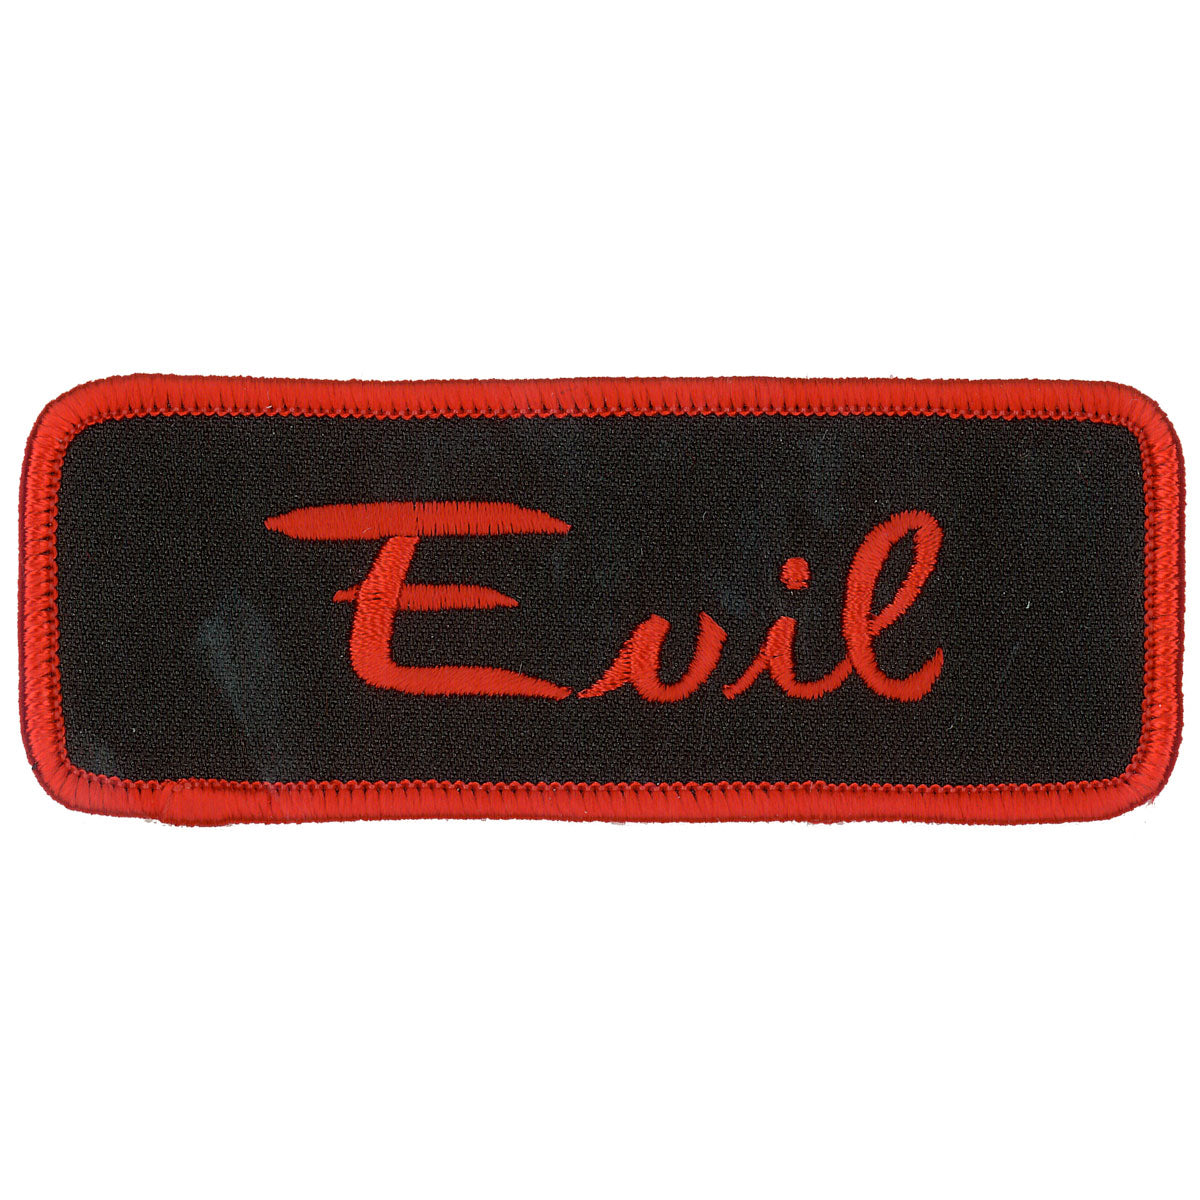 "Hot Leathers 4"" Evil Patch"